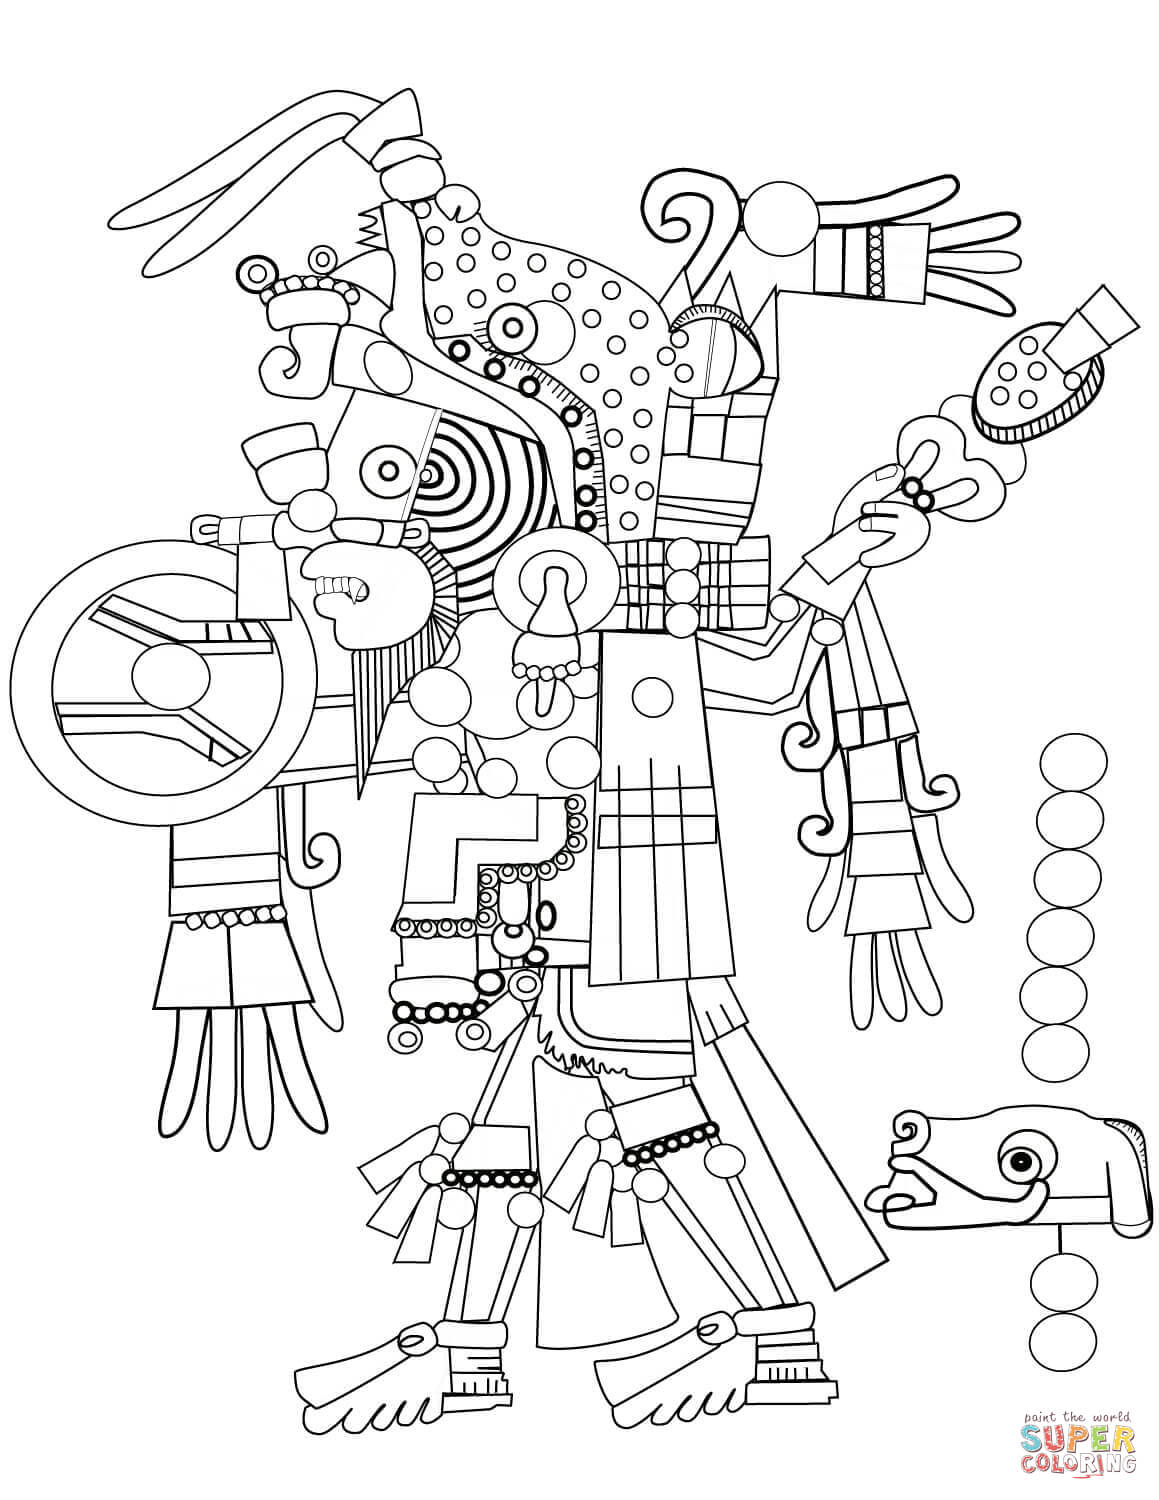 mexico coloring sheet mexican culture coloring pages at getdrawings free download mexico coloring sheet